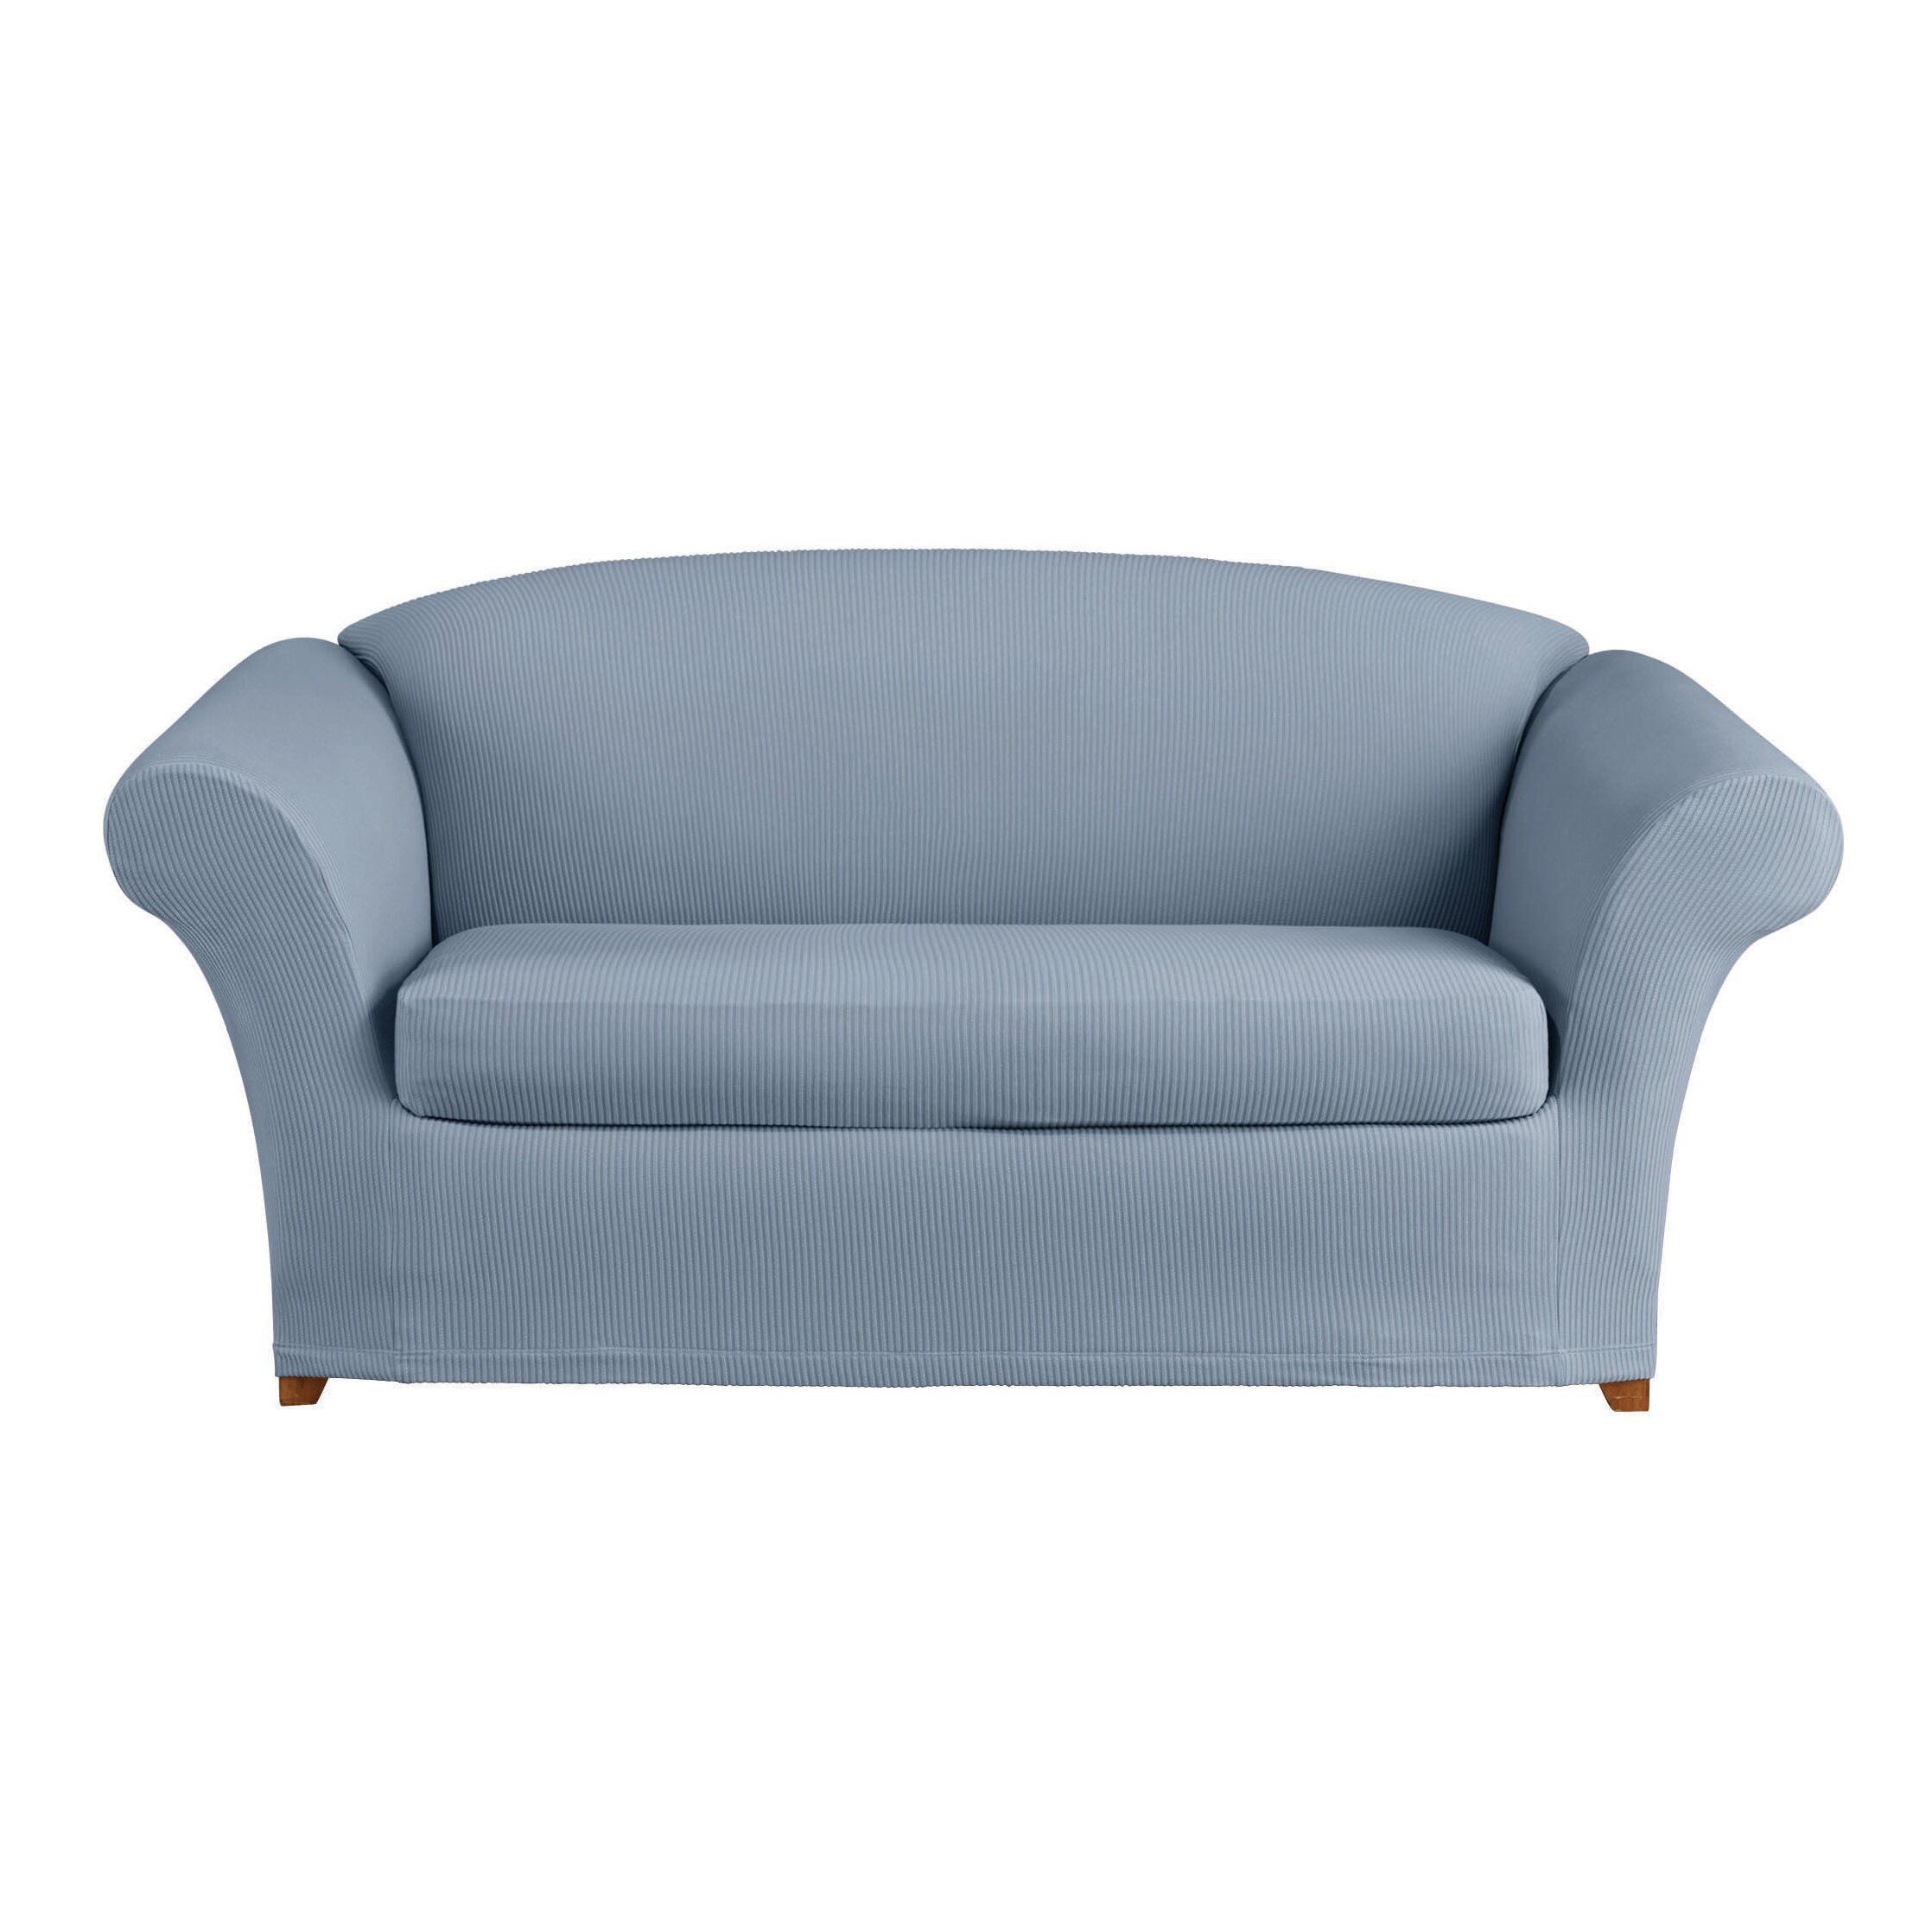 Sure fit stretch seersucker loveseat t cushion seperate seat slipcover reviews wayfair Loveseat t cushion slipcovers